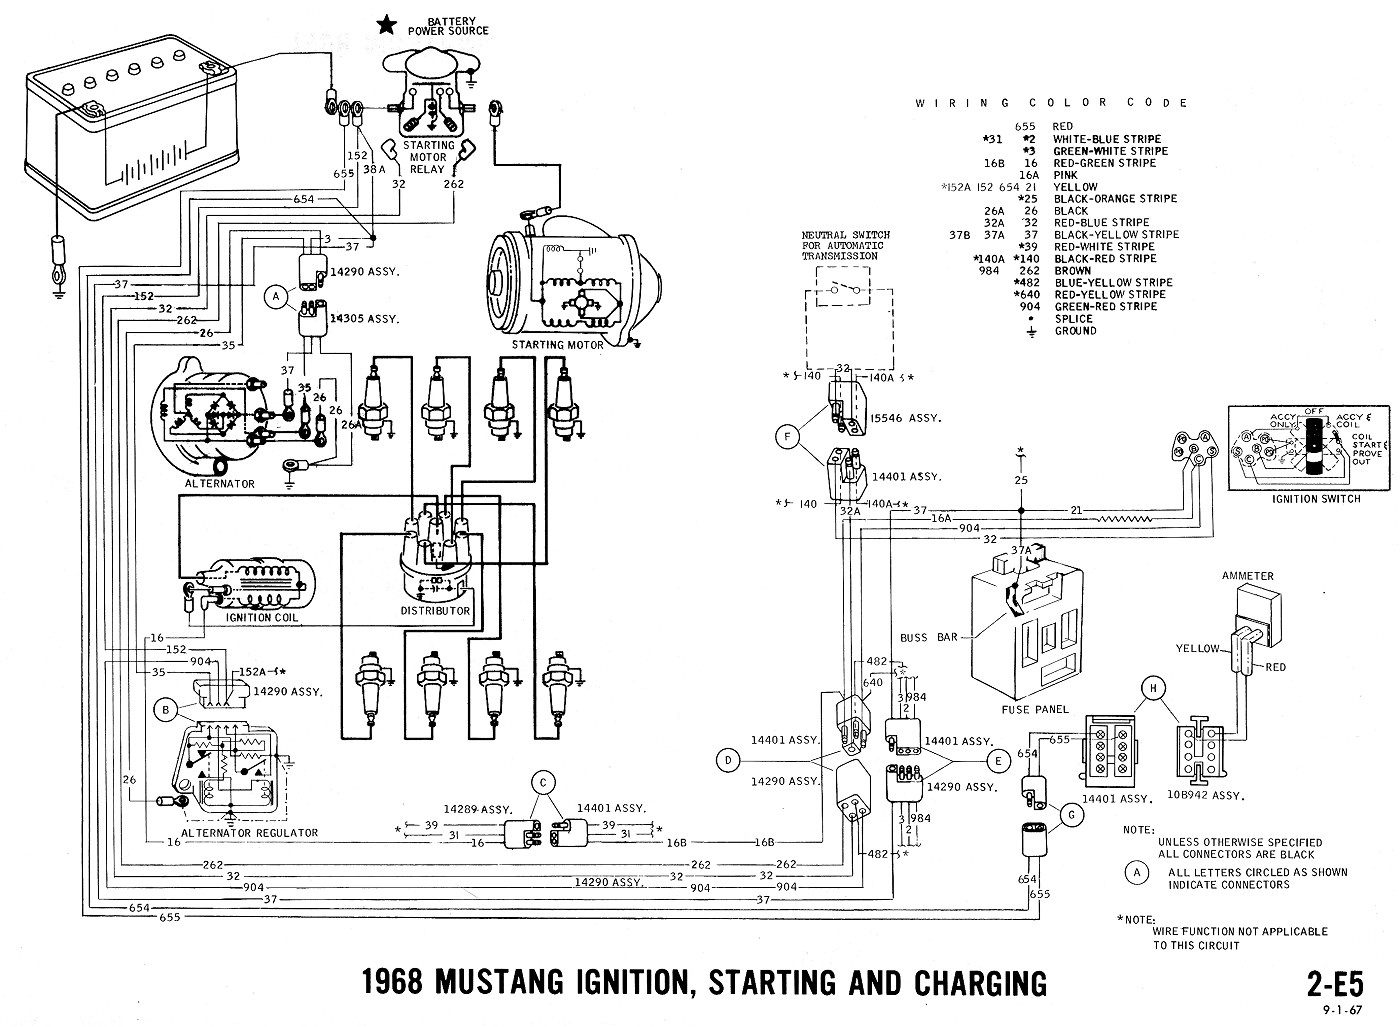 1982 mustang wiring harness wiring diagram all data 01 Mustang Wiring Diagram 1982 mustang ignition wiring diagram best wiring library 1966 mustang headlight wiring diagram 1982 mustang wiring harness